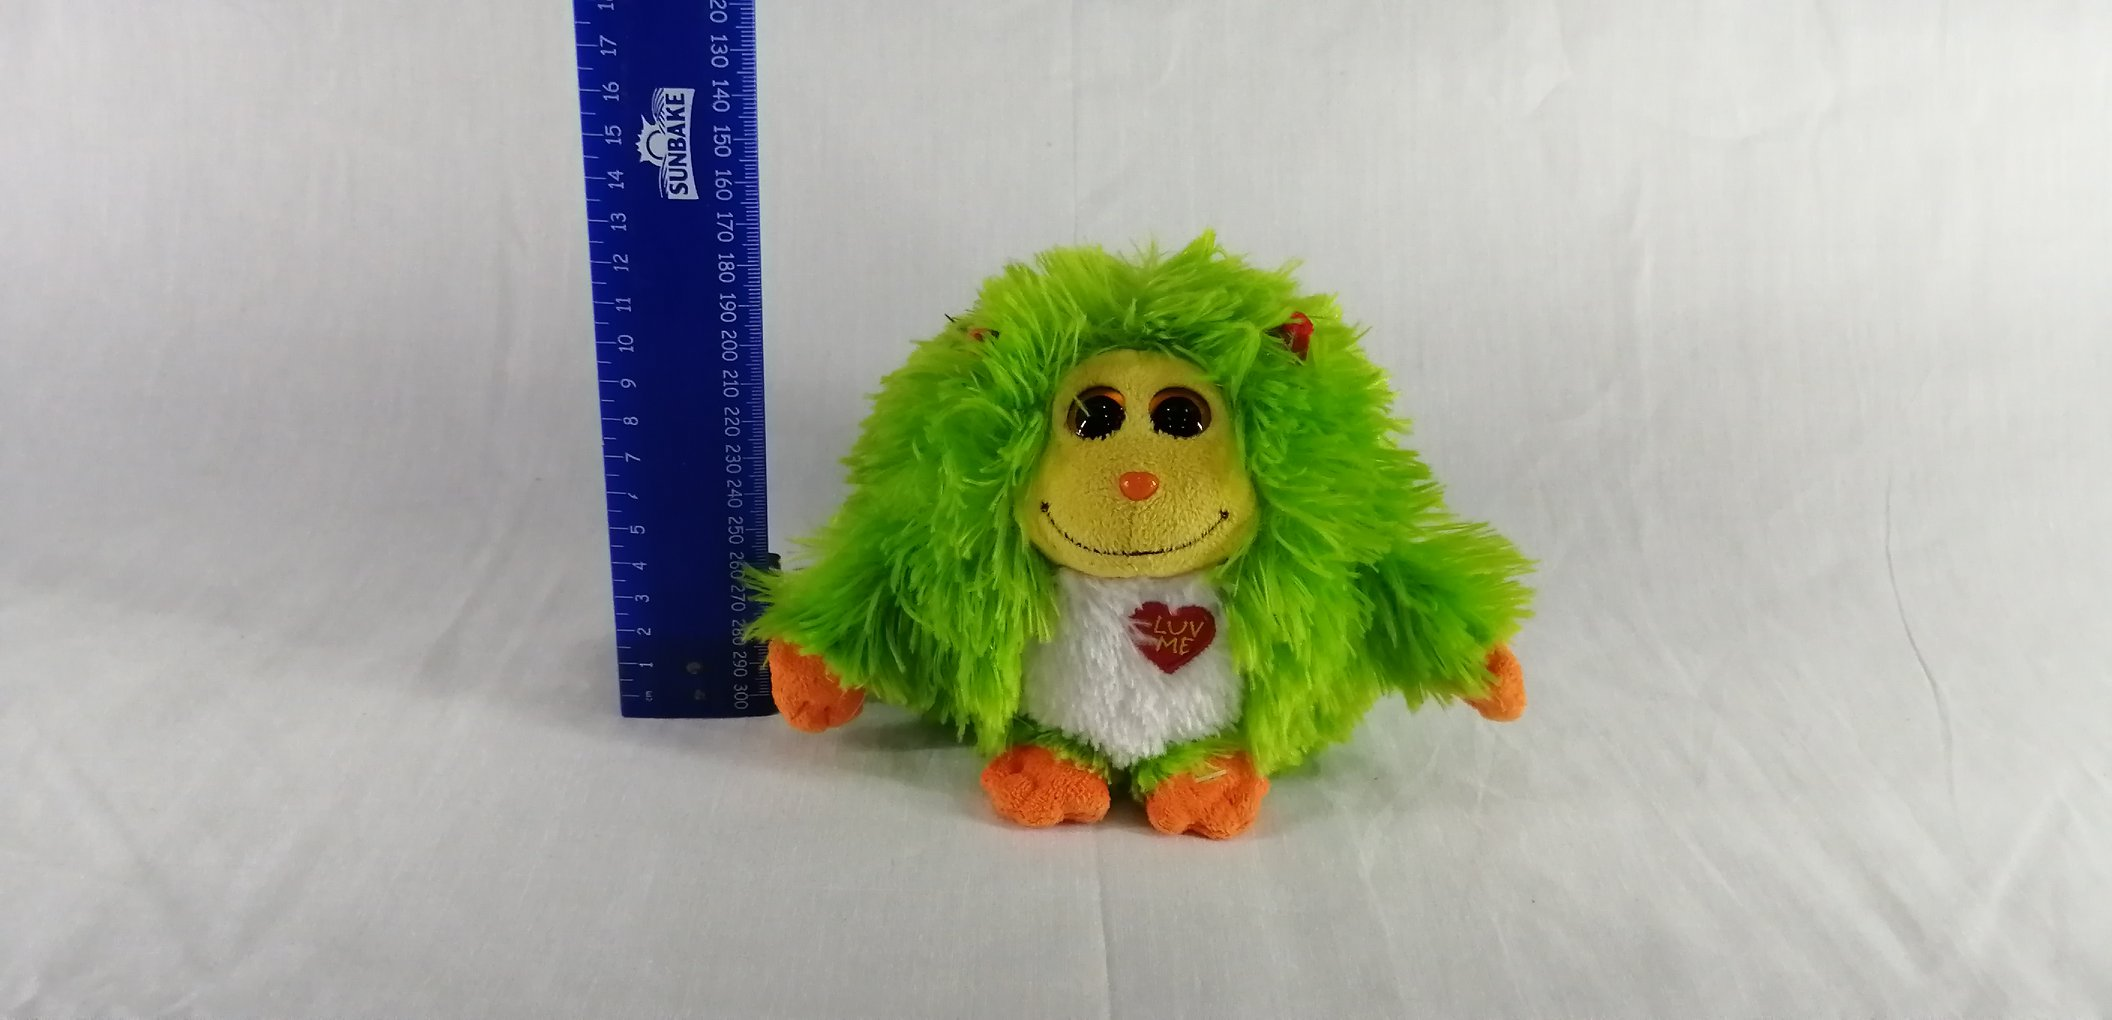 NAPTI assorted plush toys and baby accessories